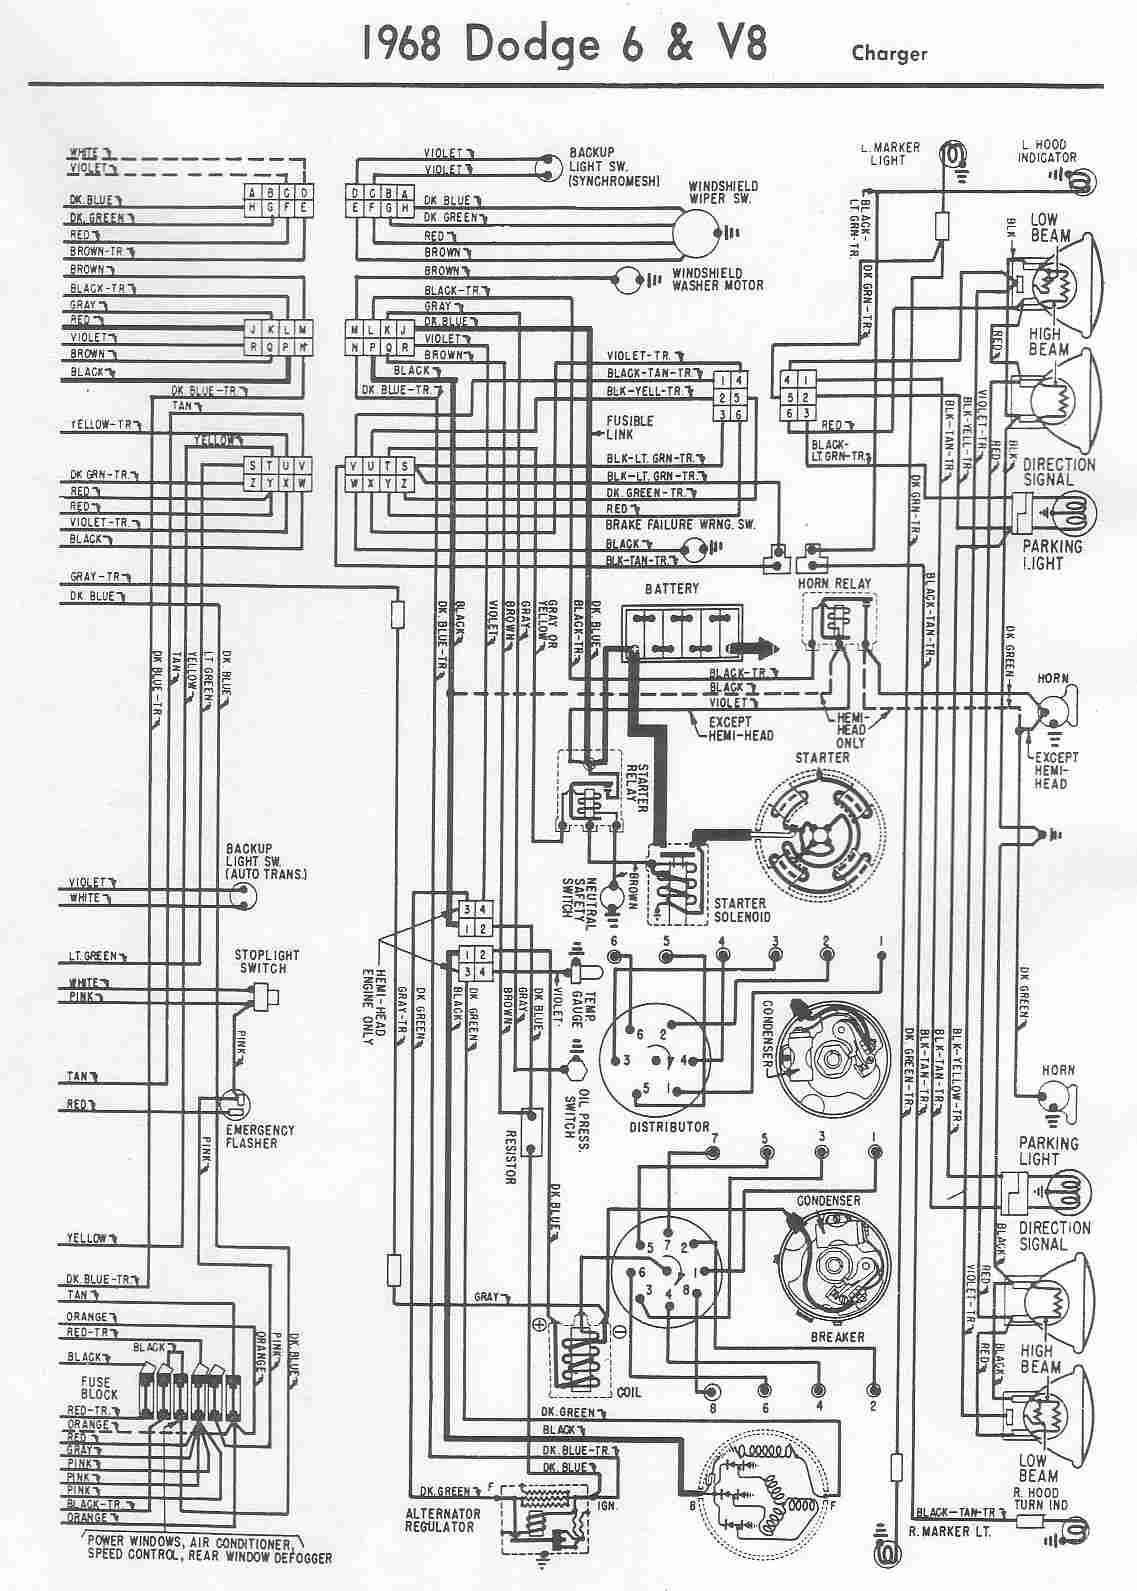 engine wire diagram for 72 beetle free download wiring library rh 73 evitta de